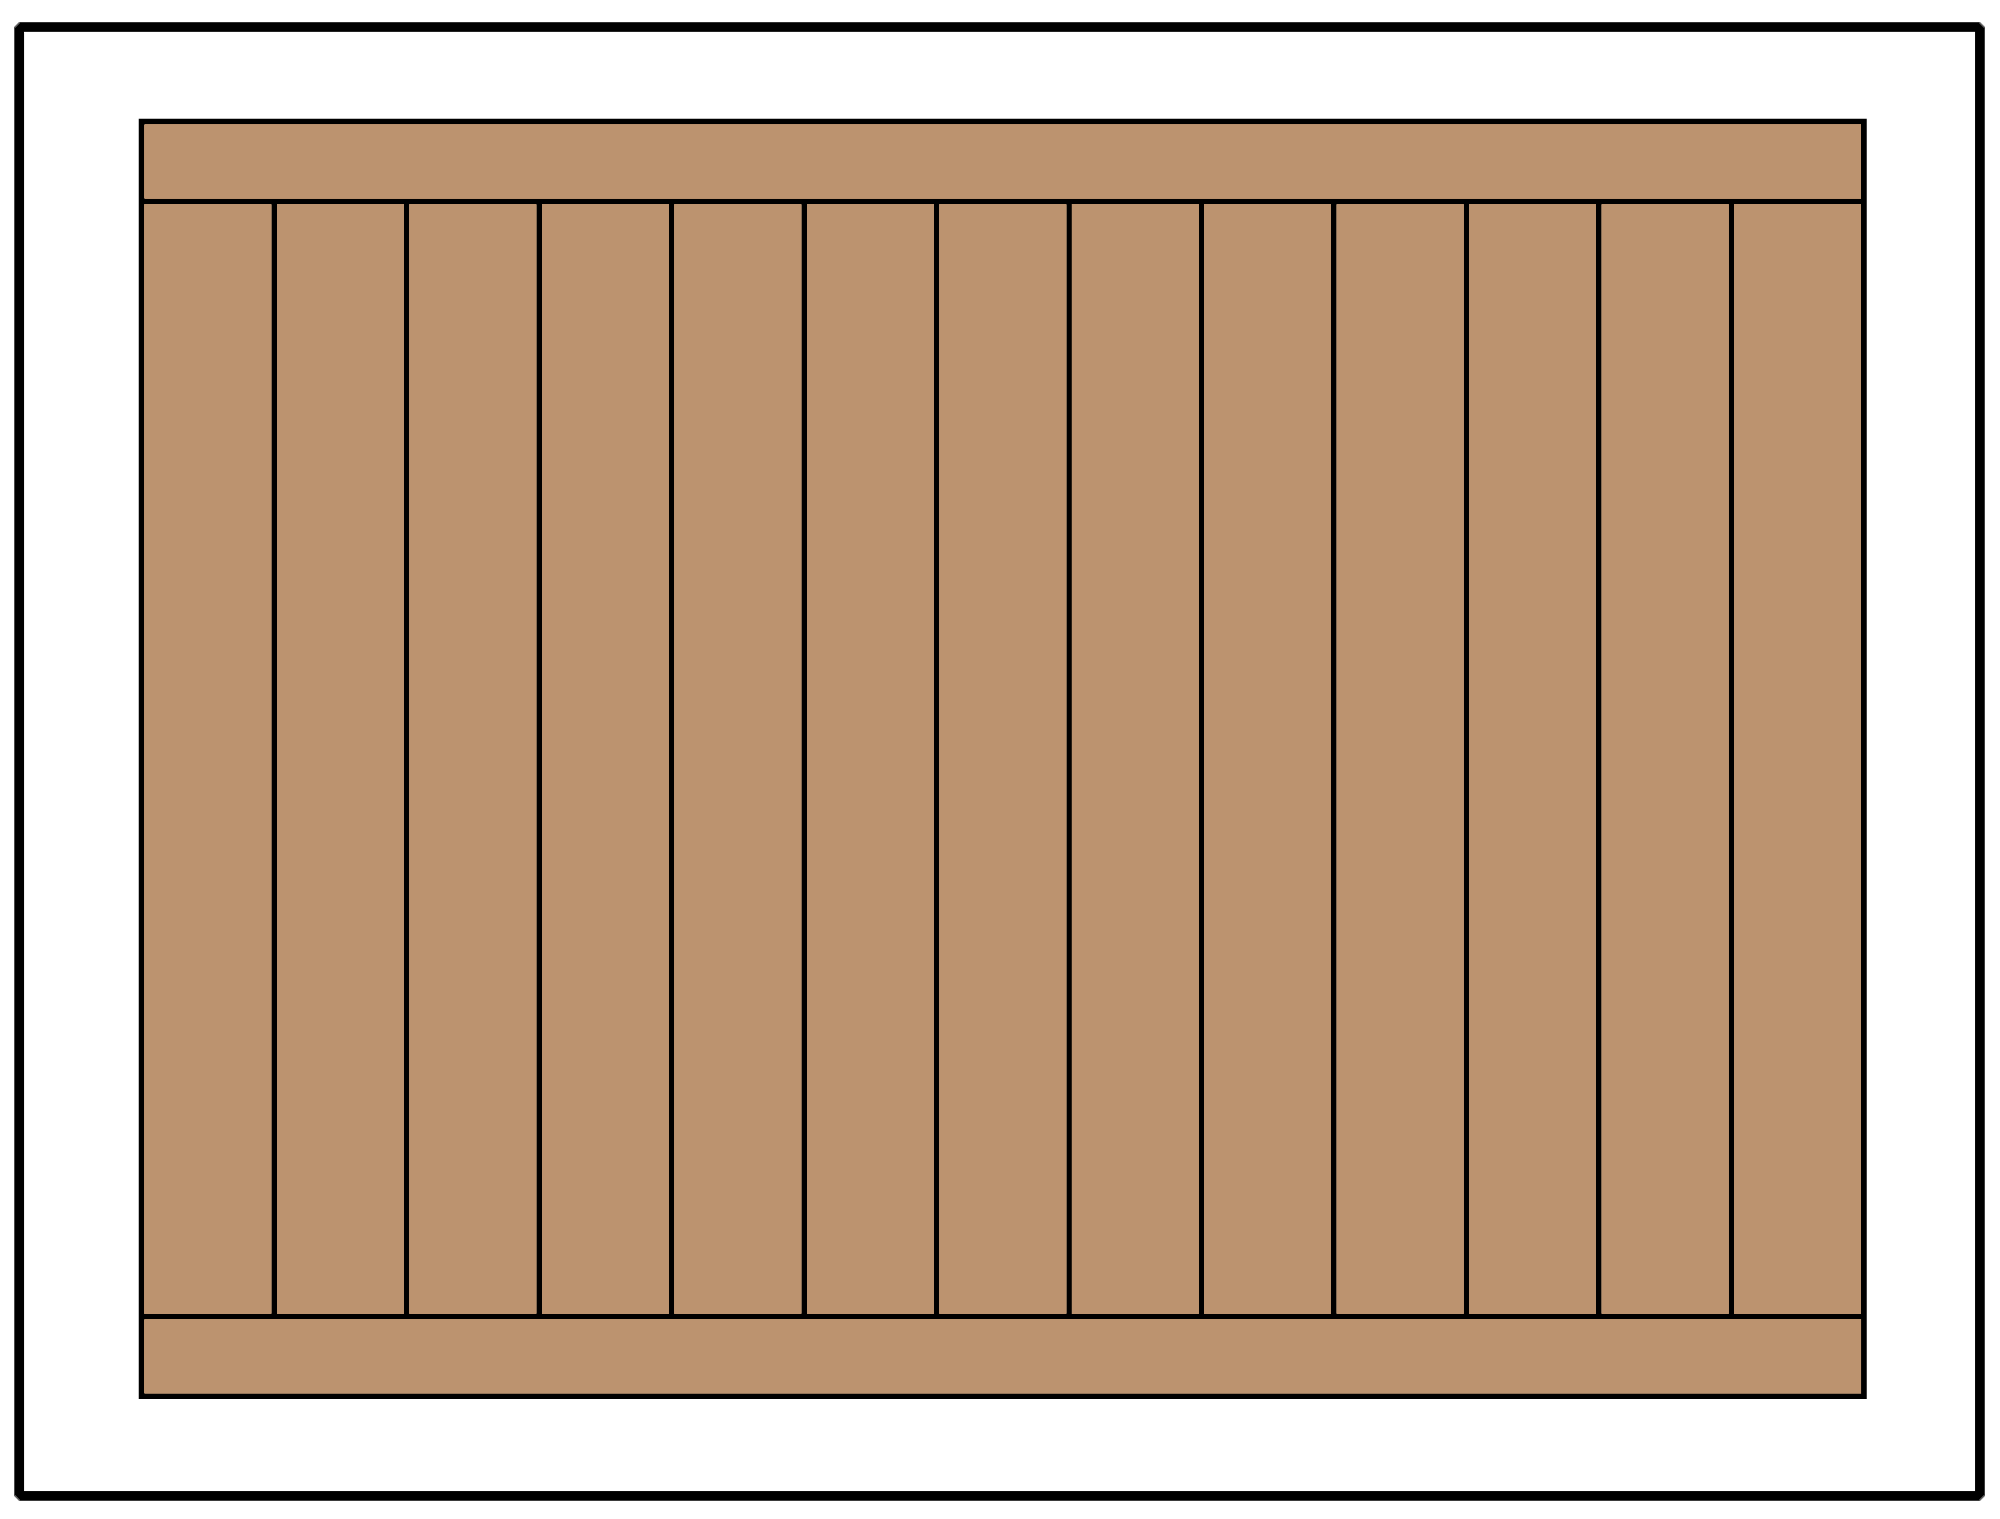 Framed style privacy fence